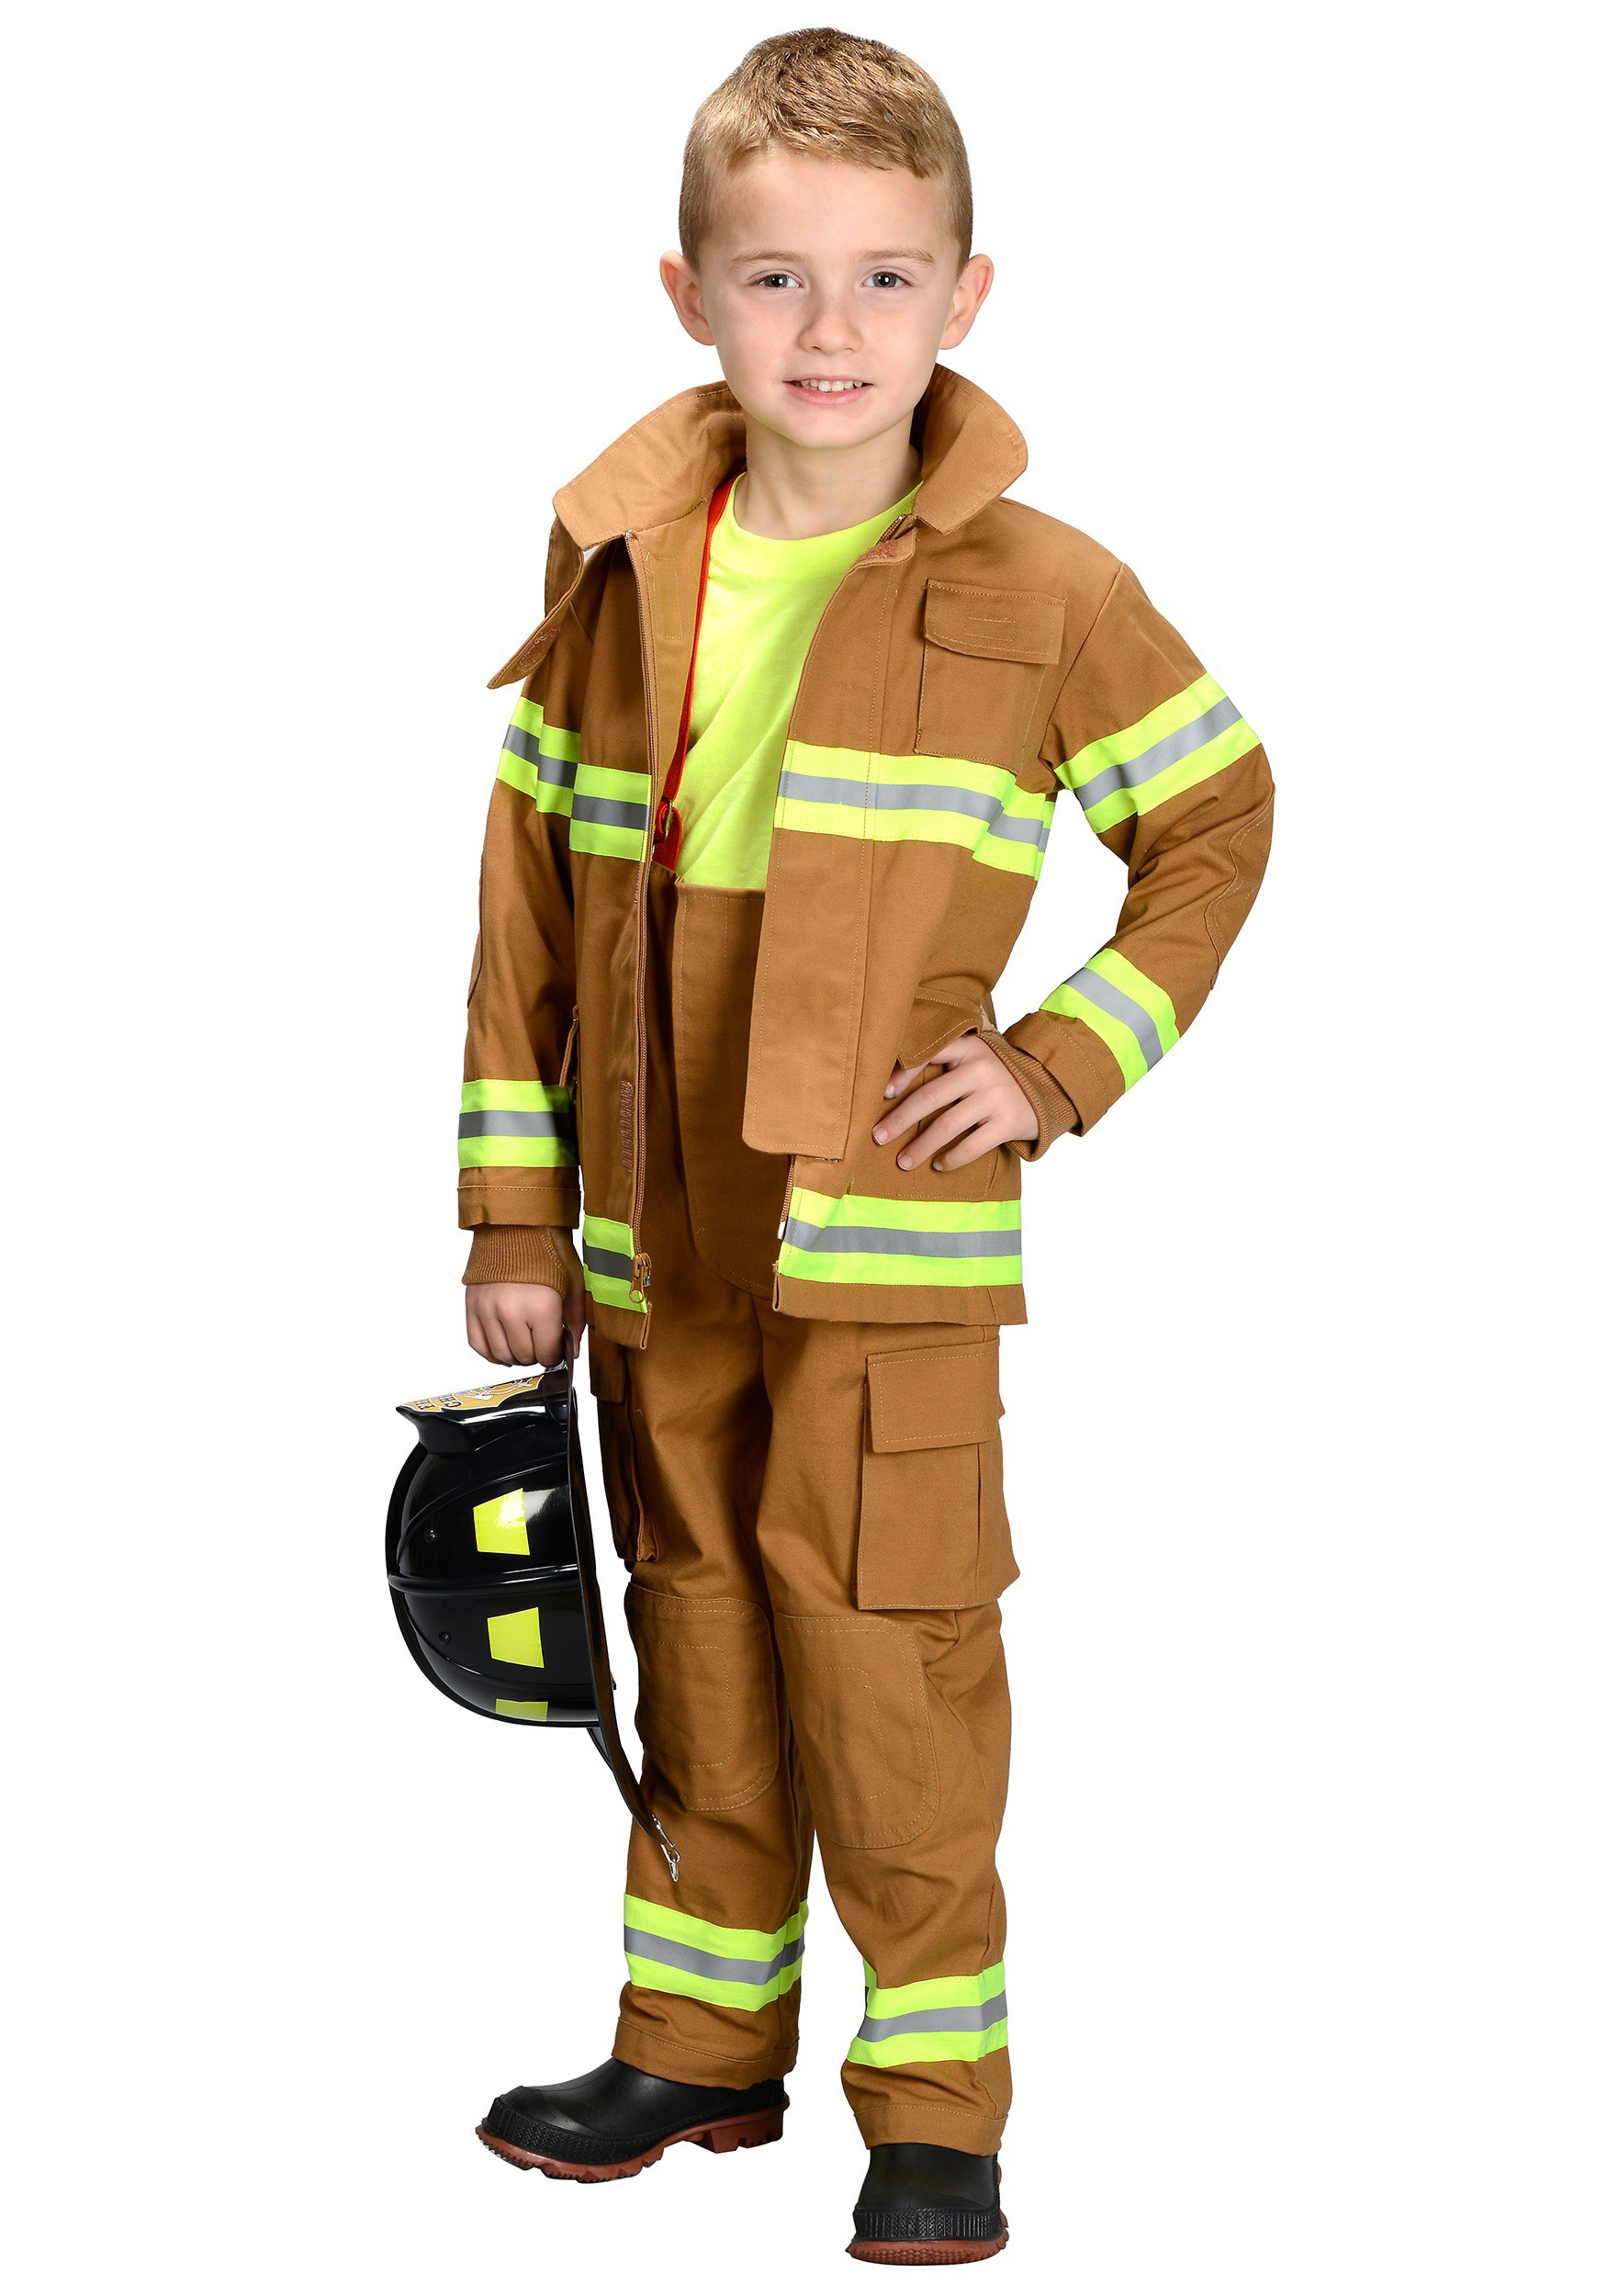 Firefighter Costume for a Child